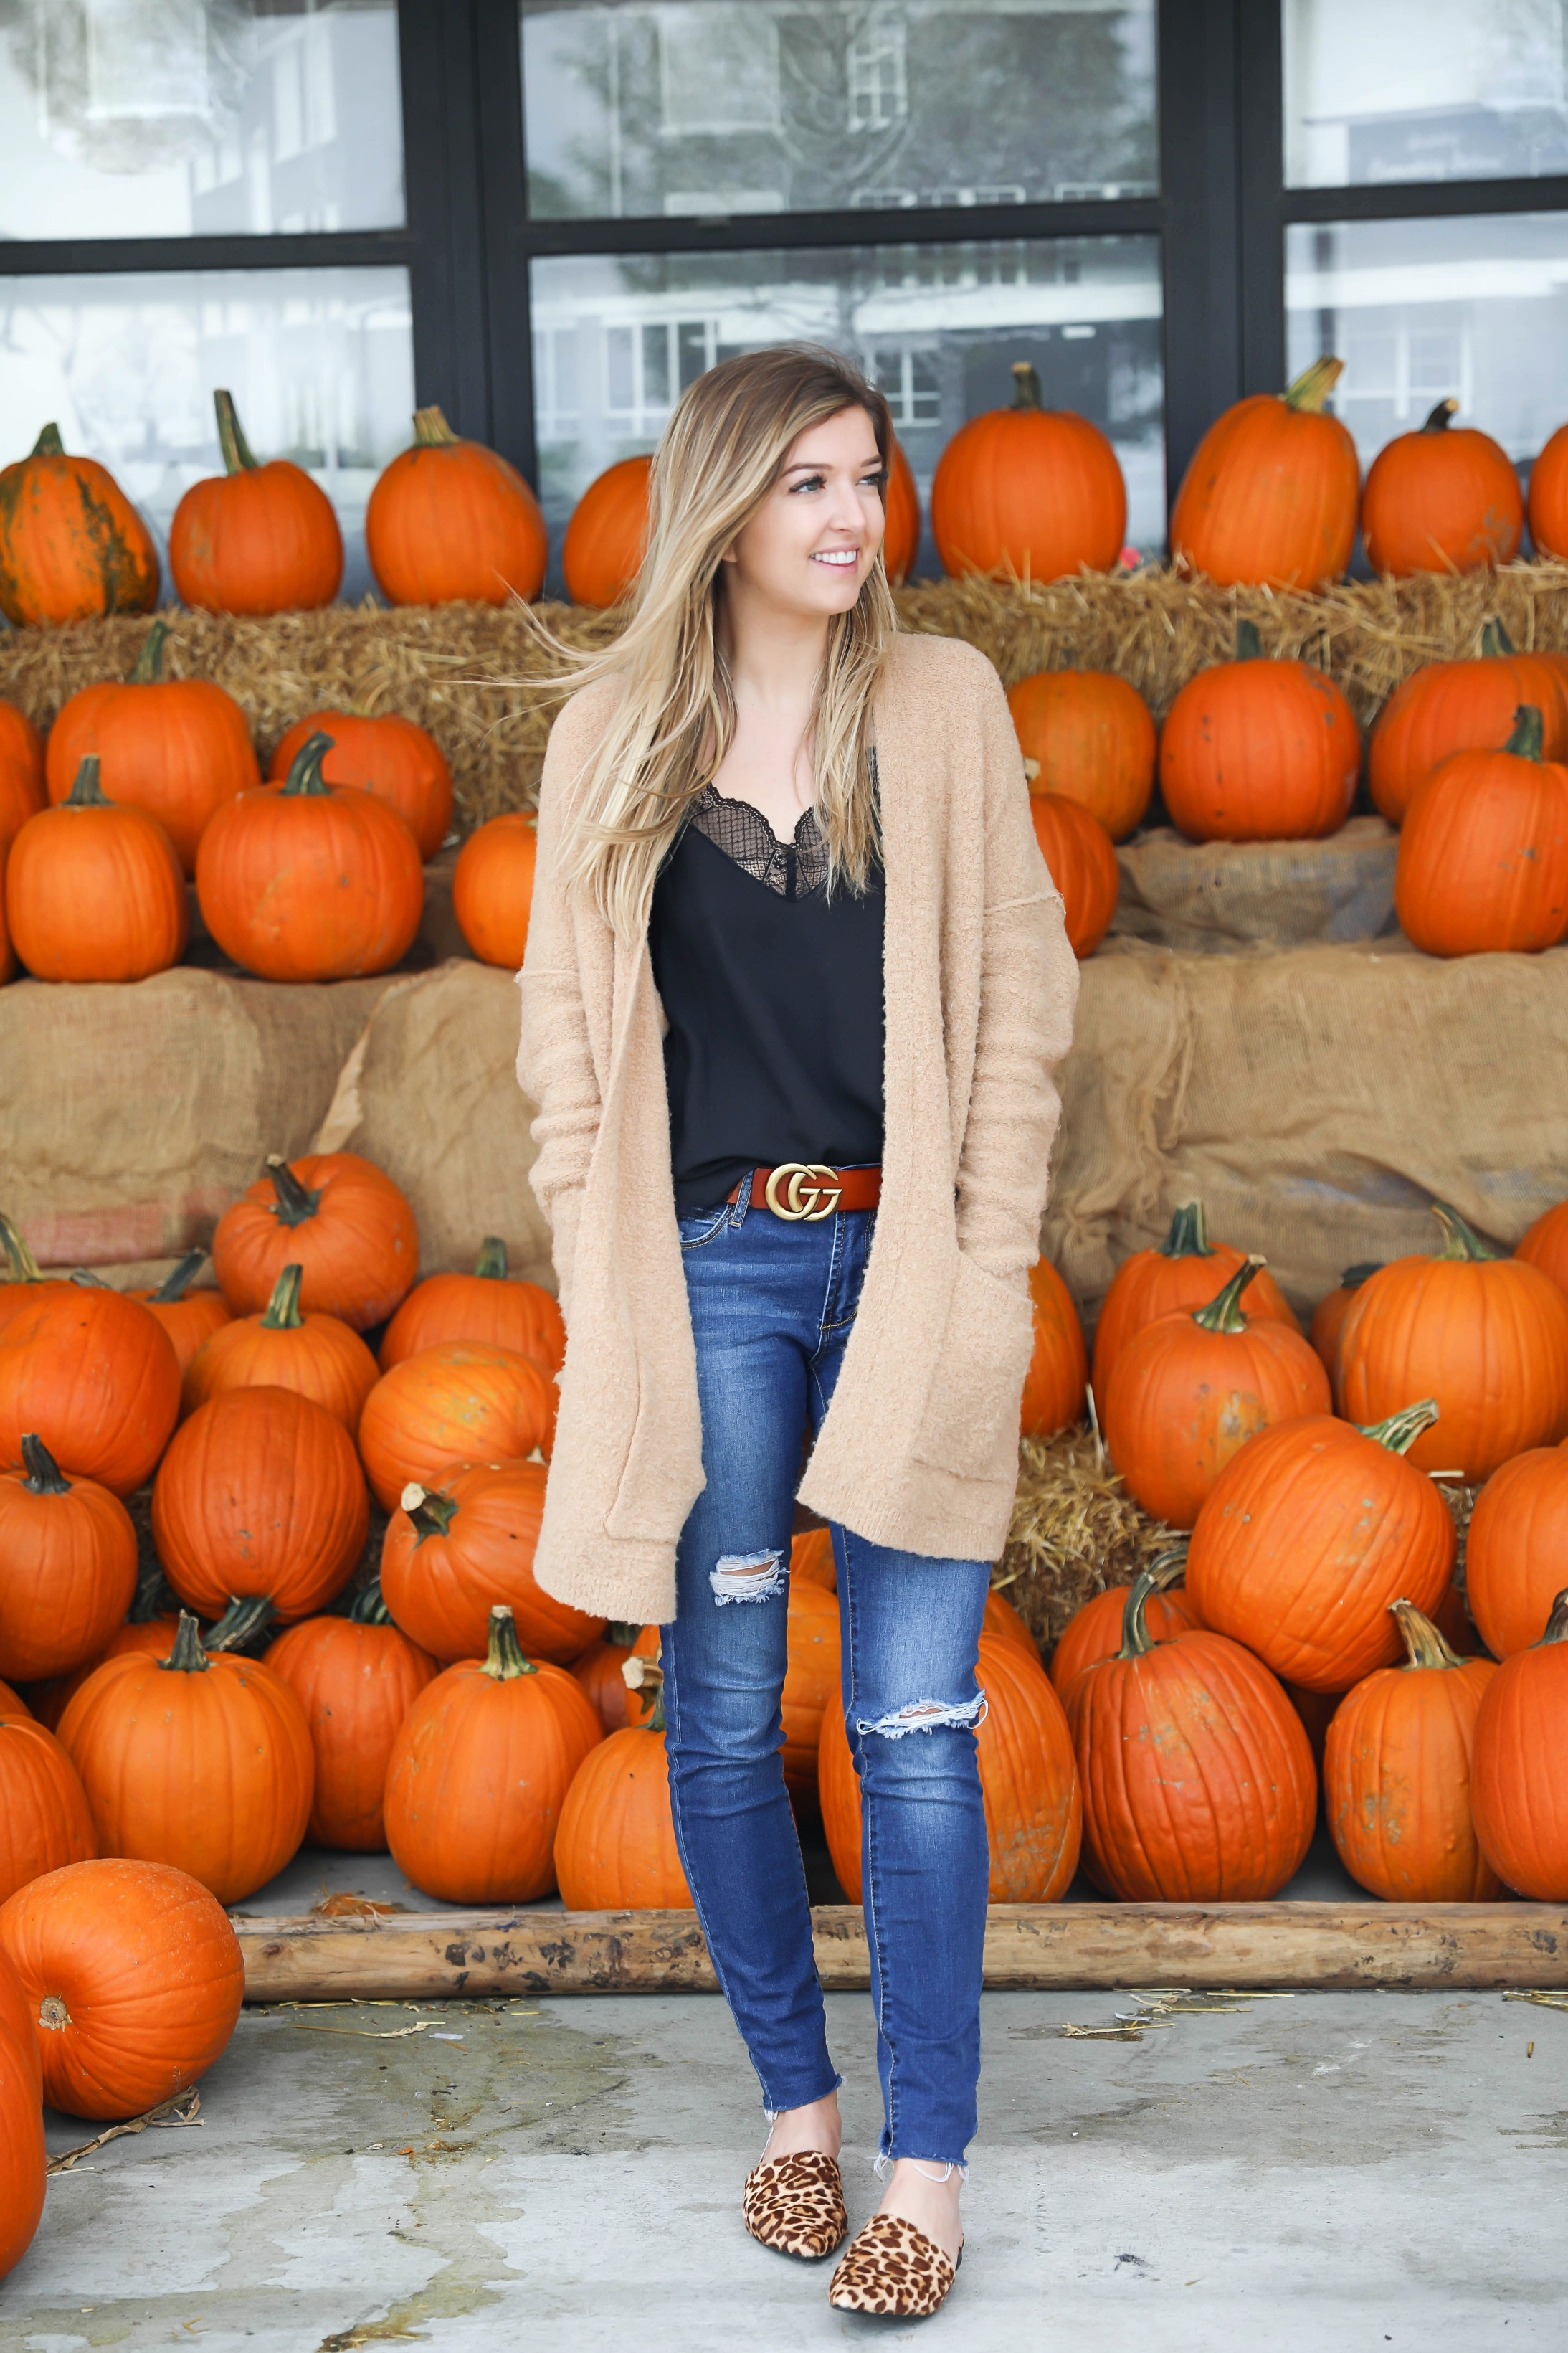 Fall outfit for the pumpkin patch! The cutest brown gucci belt and free people cardigan paired with a lace cami and leopard flats! Details on fashion blog daily dose of charm by lauren lindmark